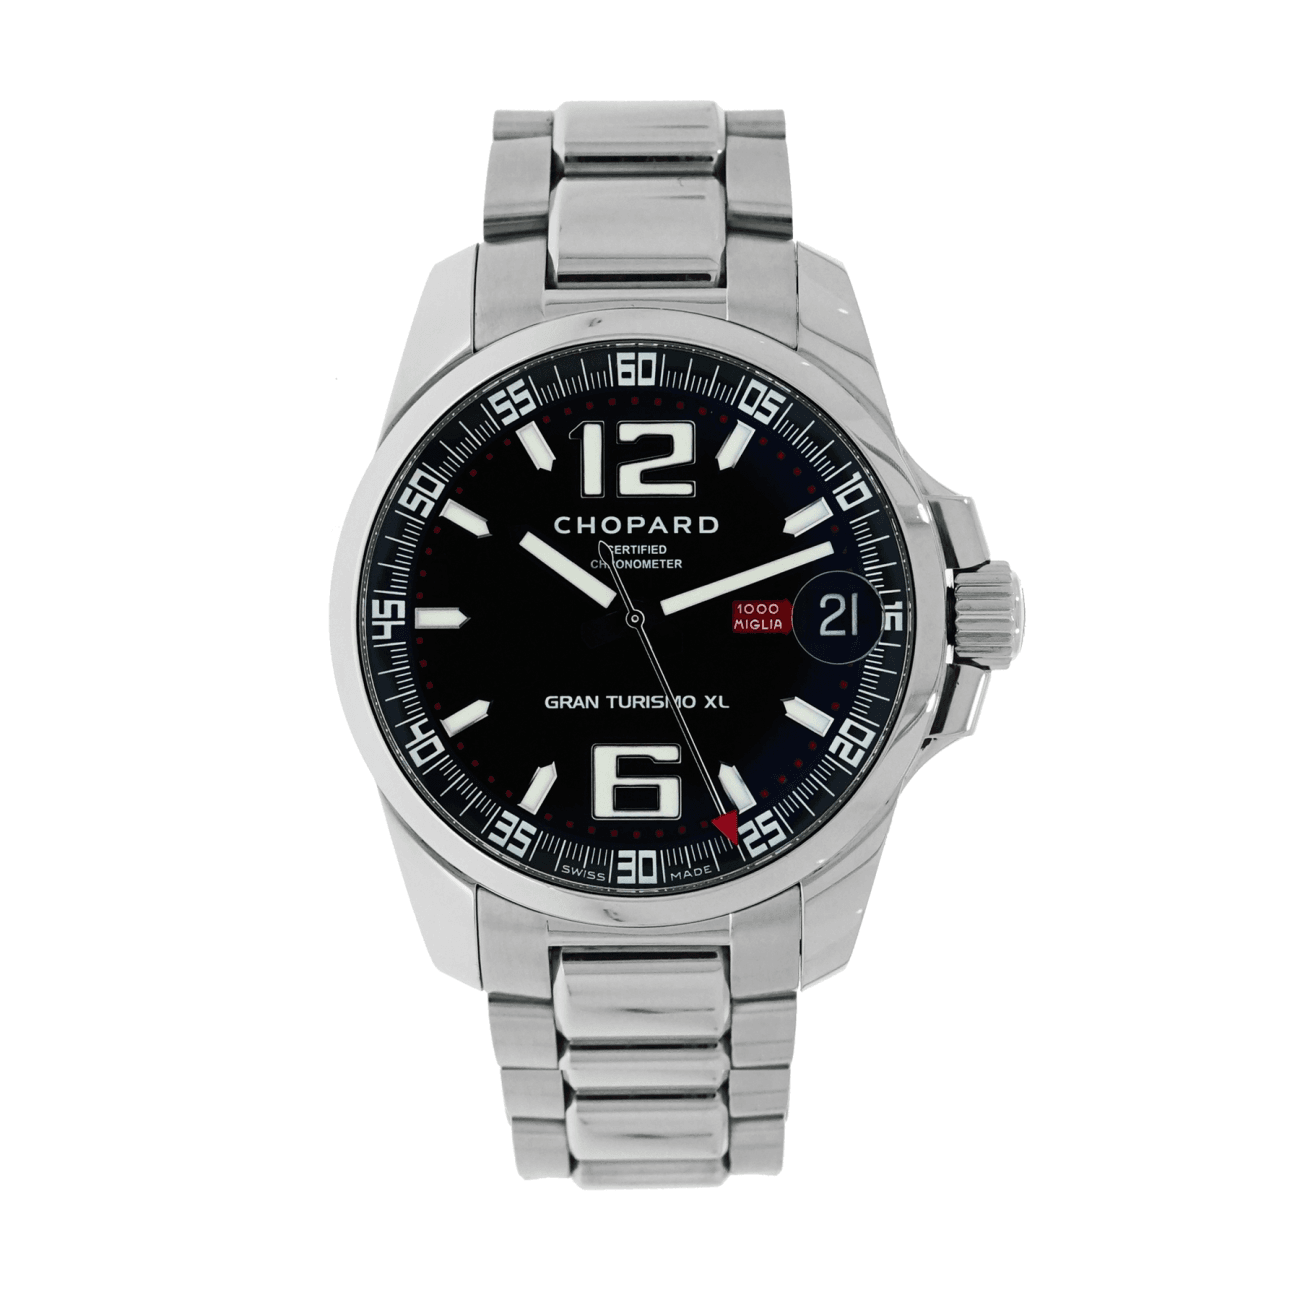 Pre-Owned Chopard Pre-Owned Watches - Mille Miglia Gran Turismo XL | Manfredi Jewels